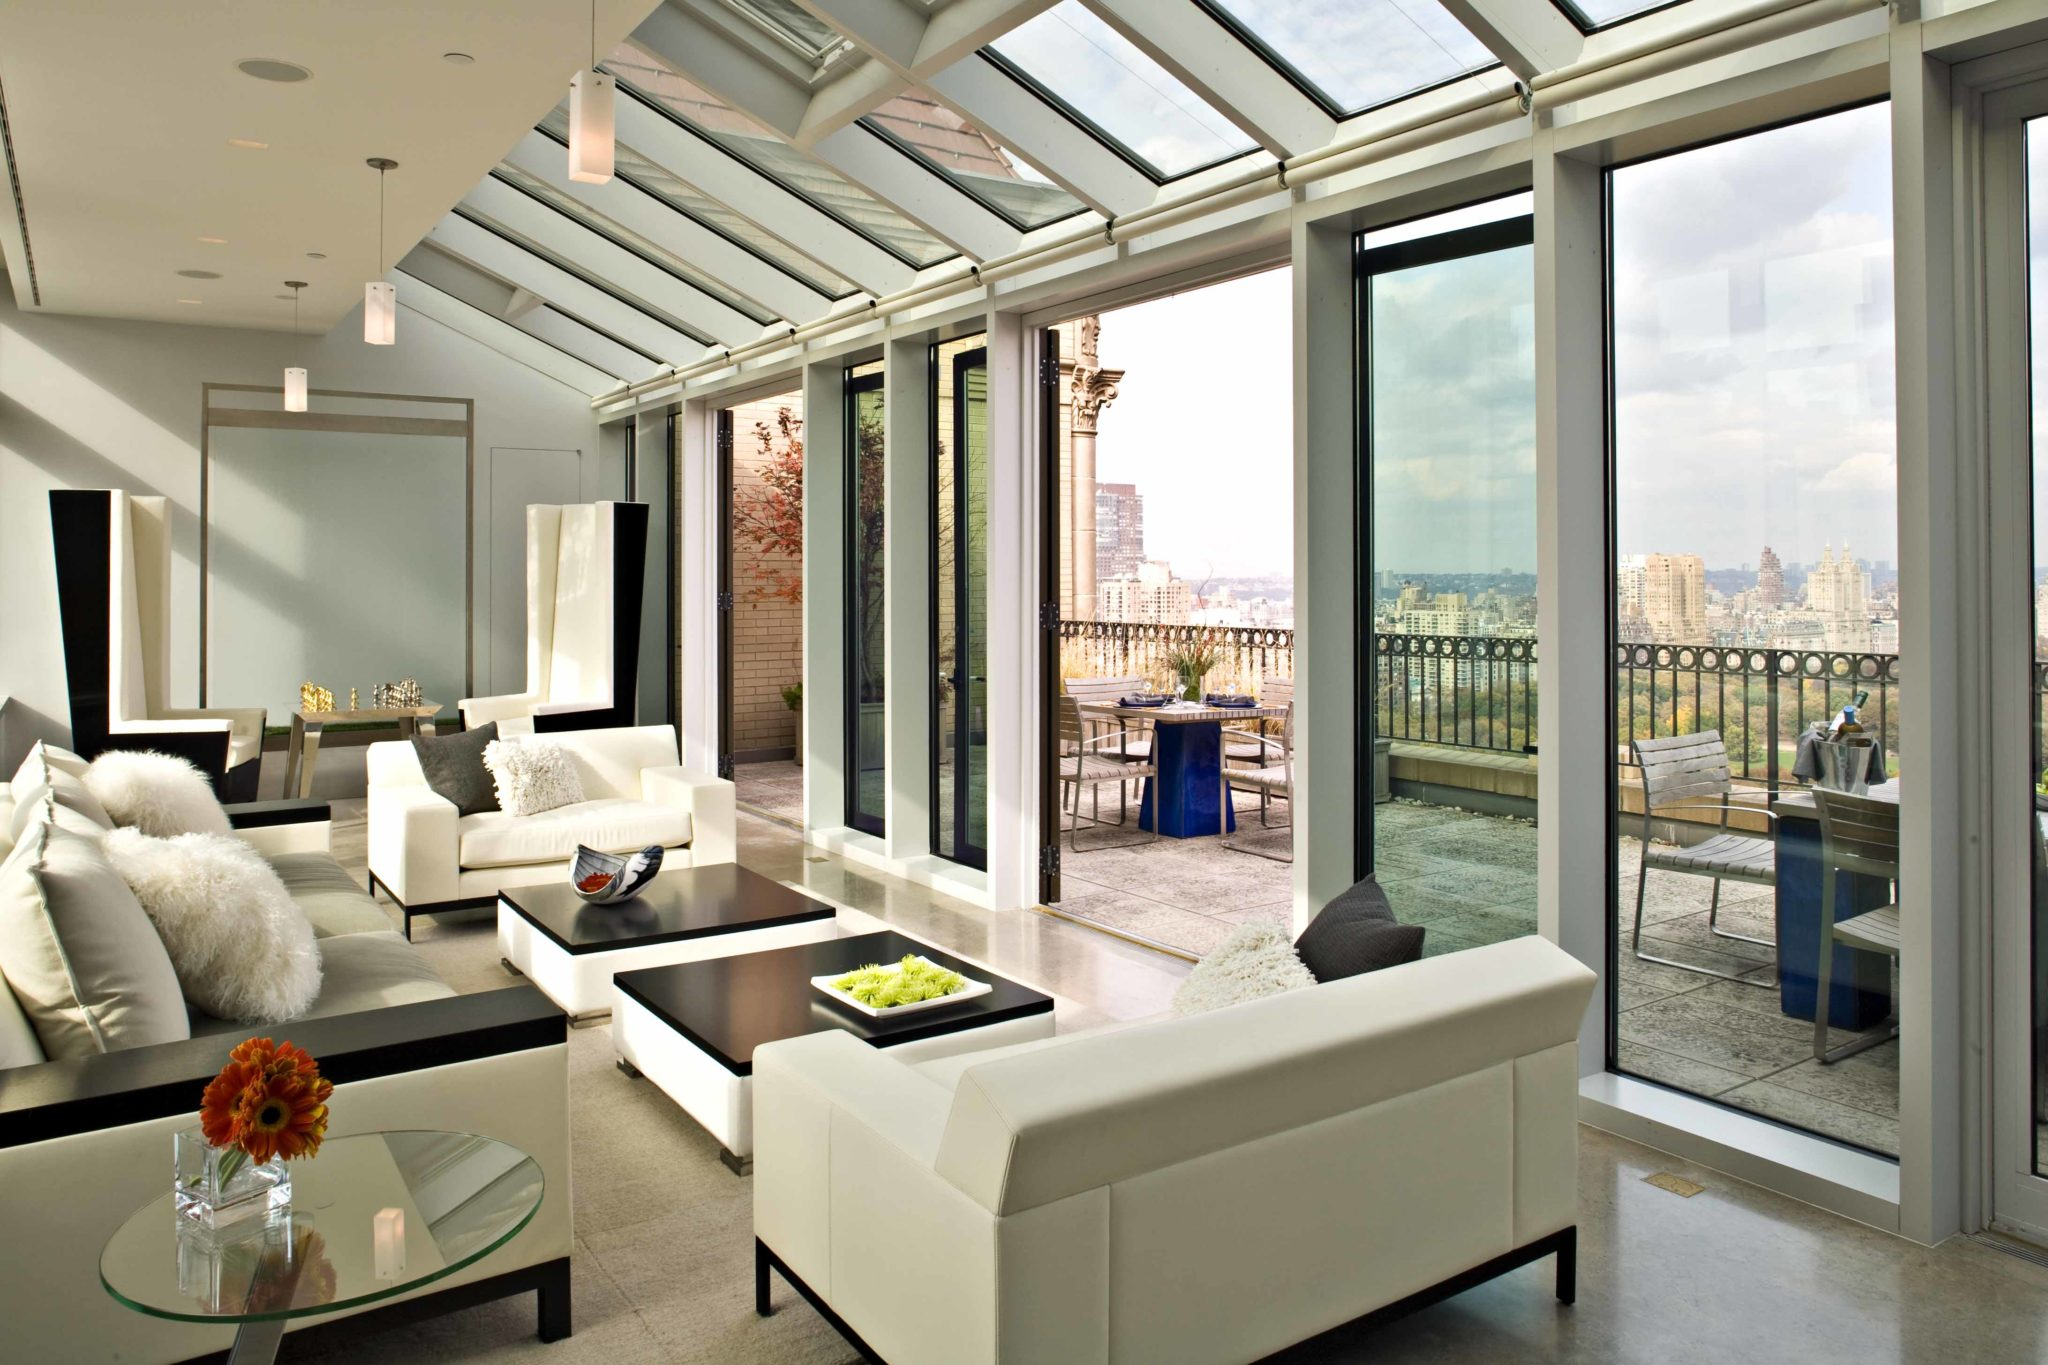 Gustavson_Dundes - Central Park South Penthouse - Solarium